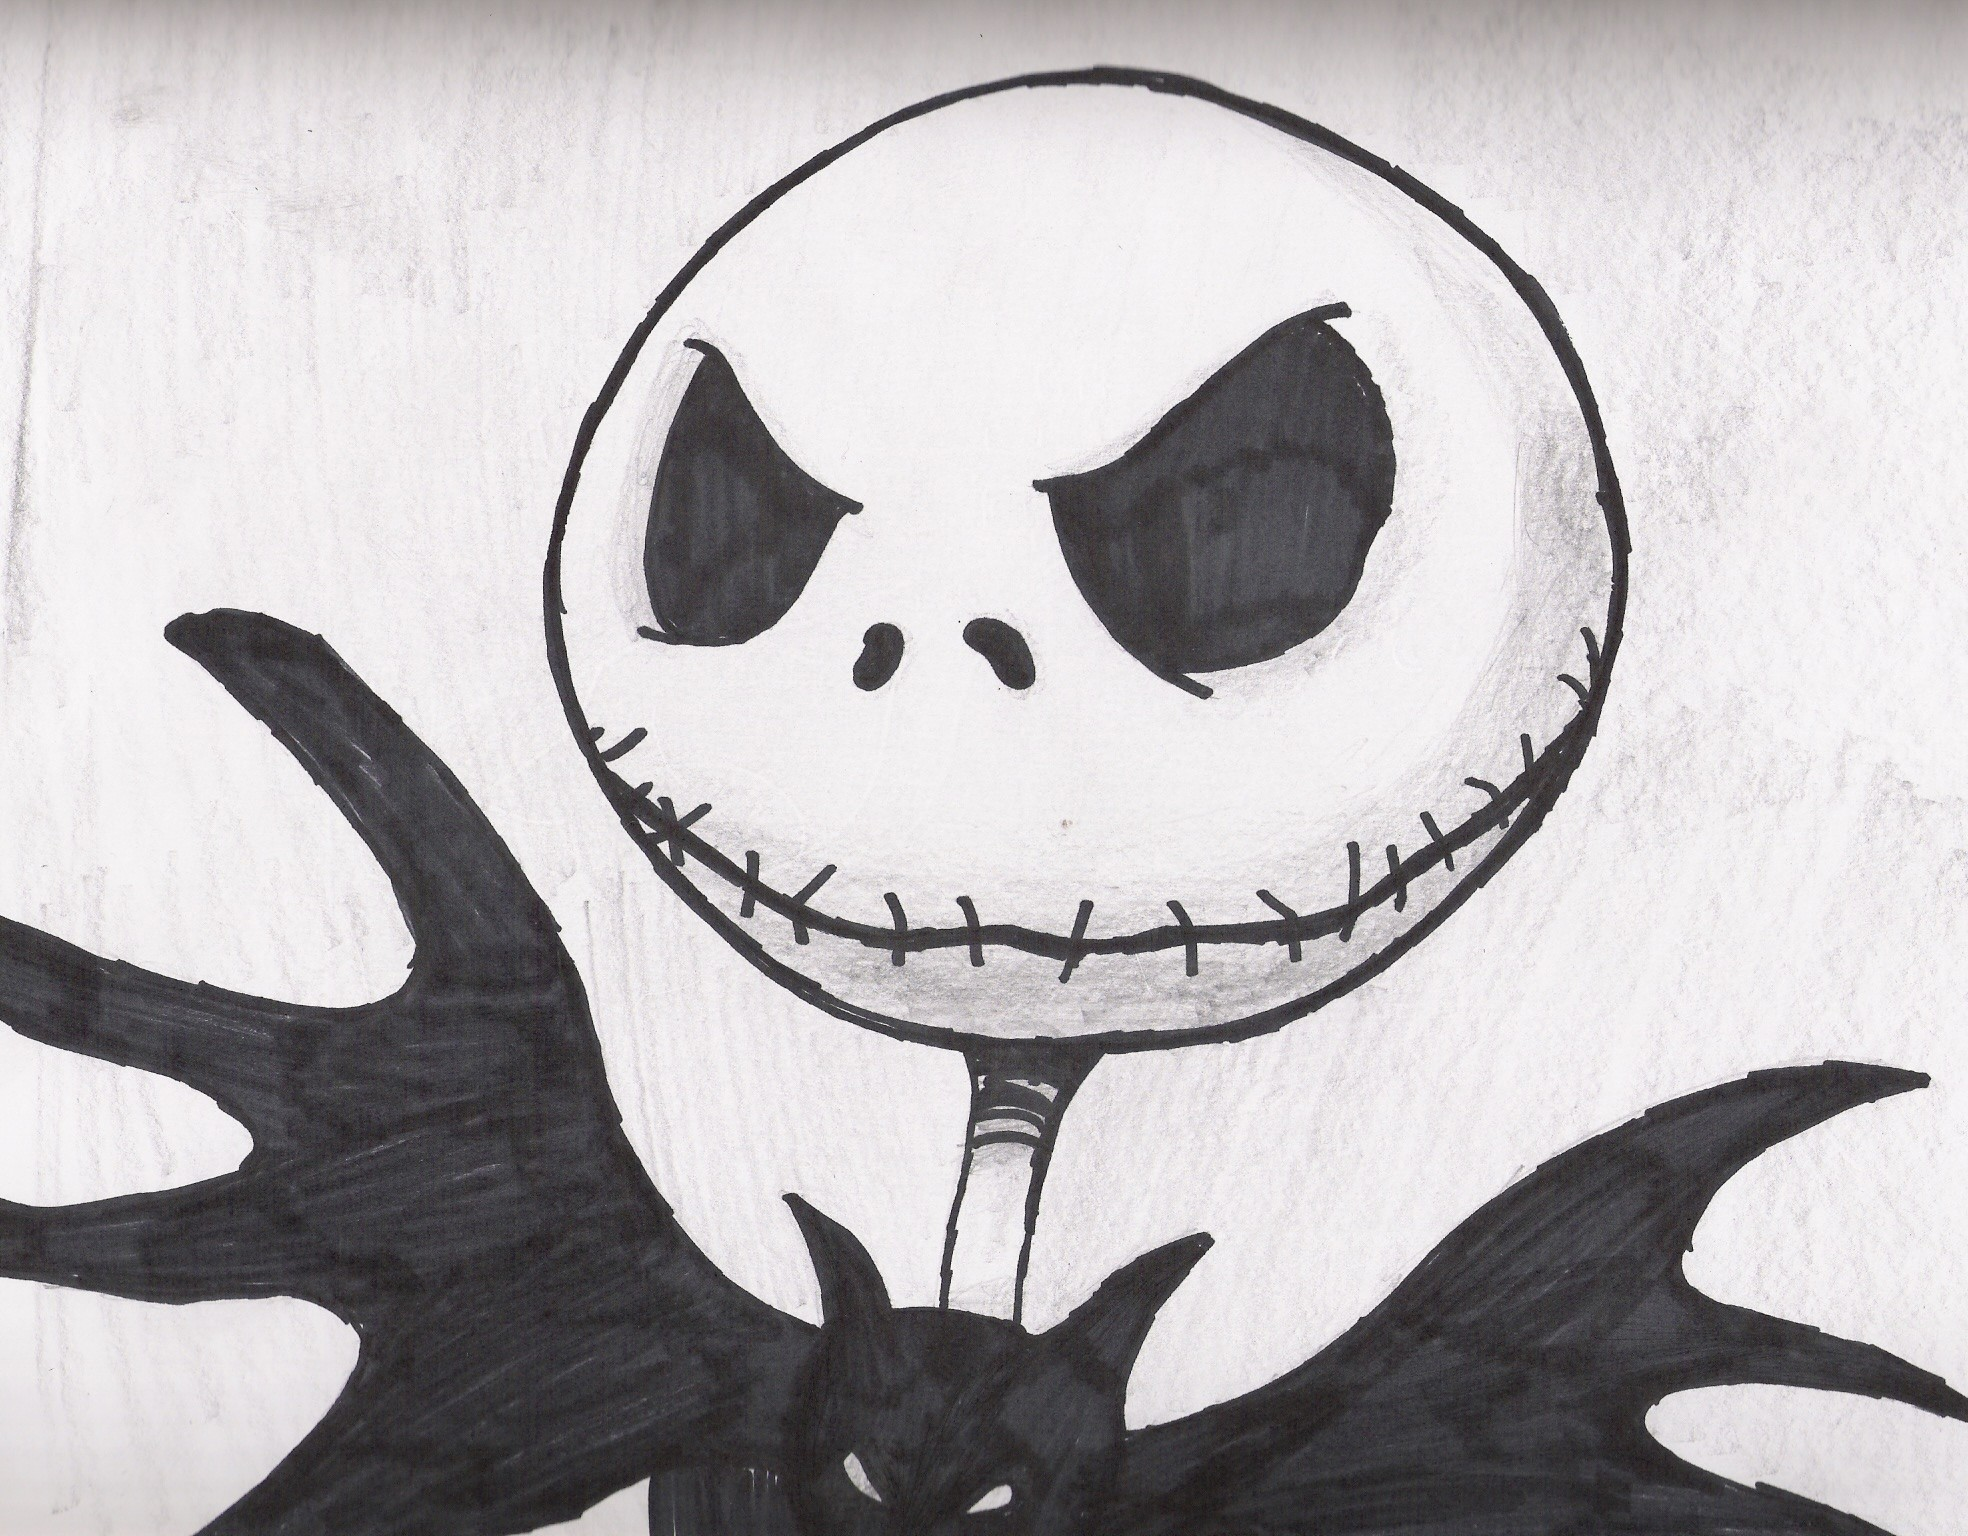 1968x1536 simple maliculous jack skellington by maliculous jack skellington by.